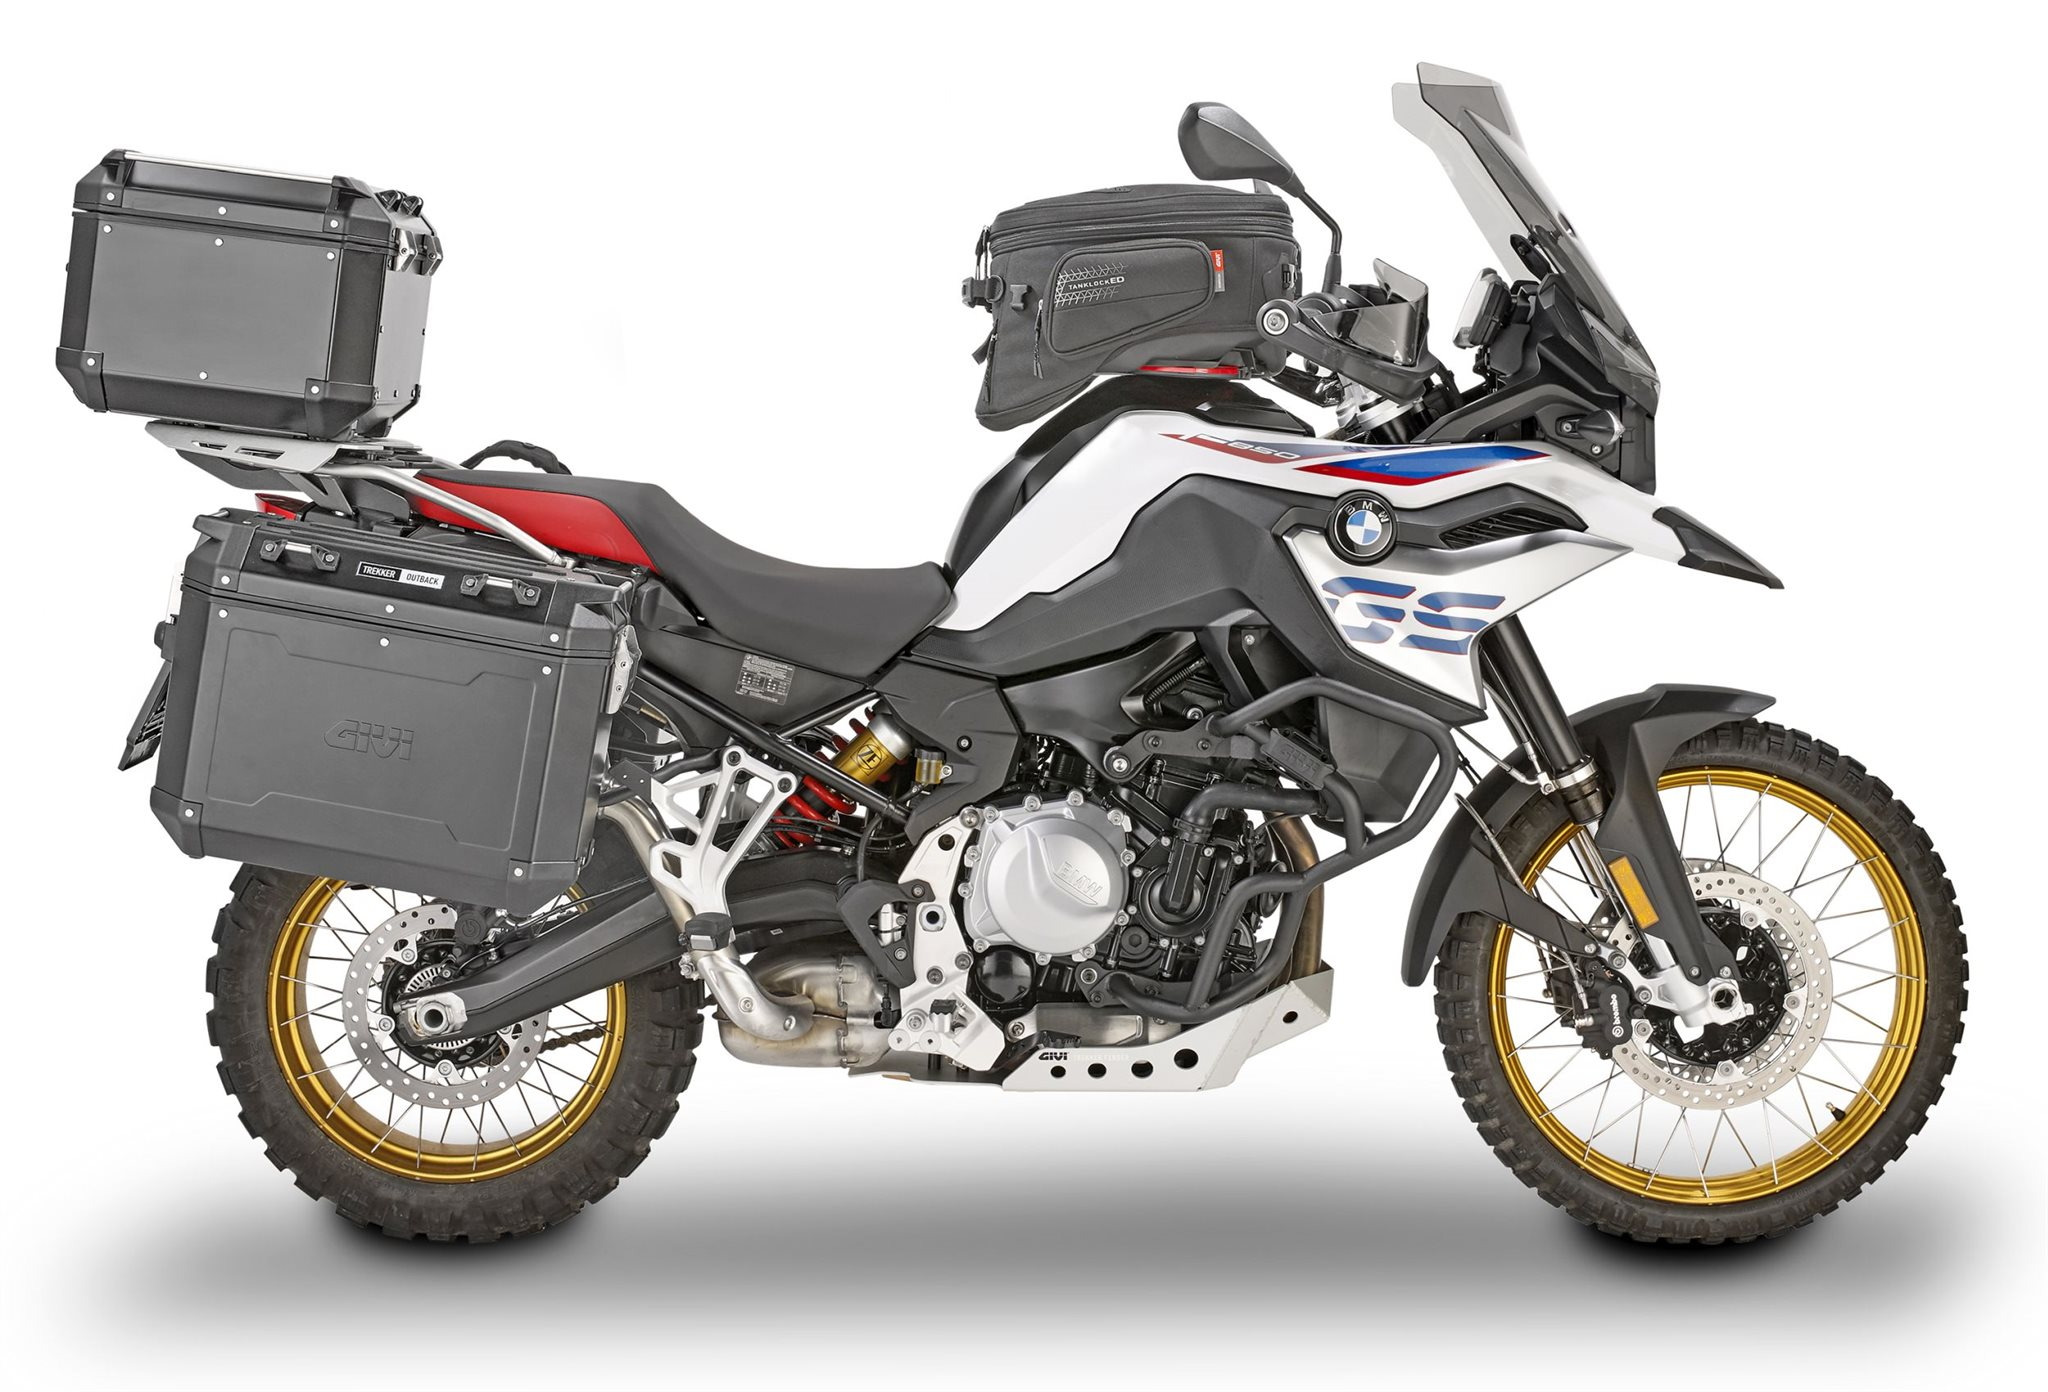 givi zubeh r f r die bmw f 850 gs motorrad news. Black Bedroom Furniture Sets. Home Design Ideas